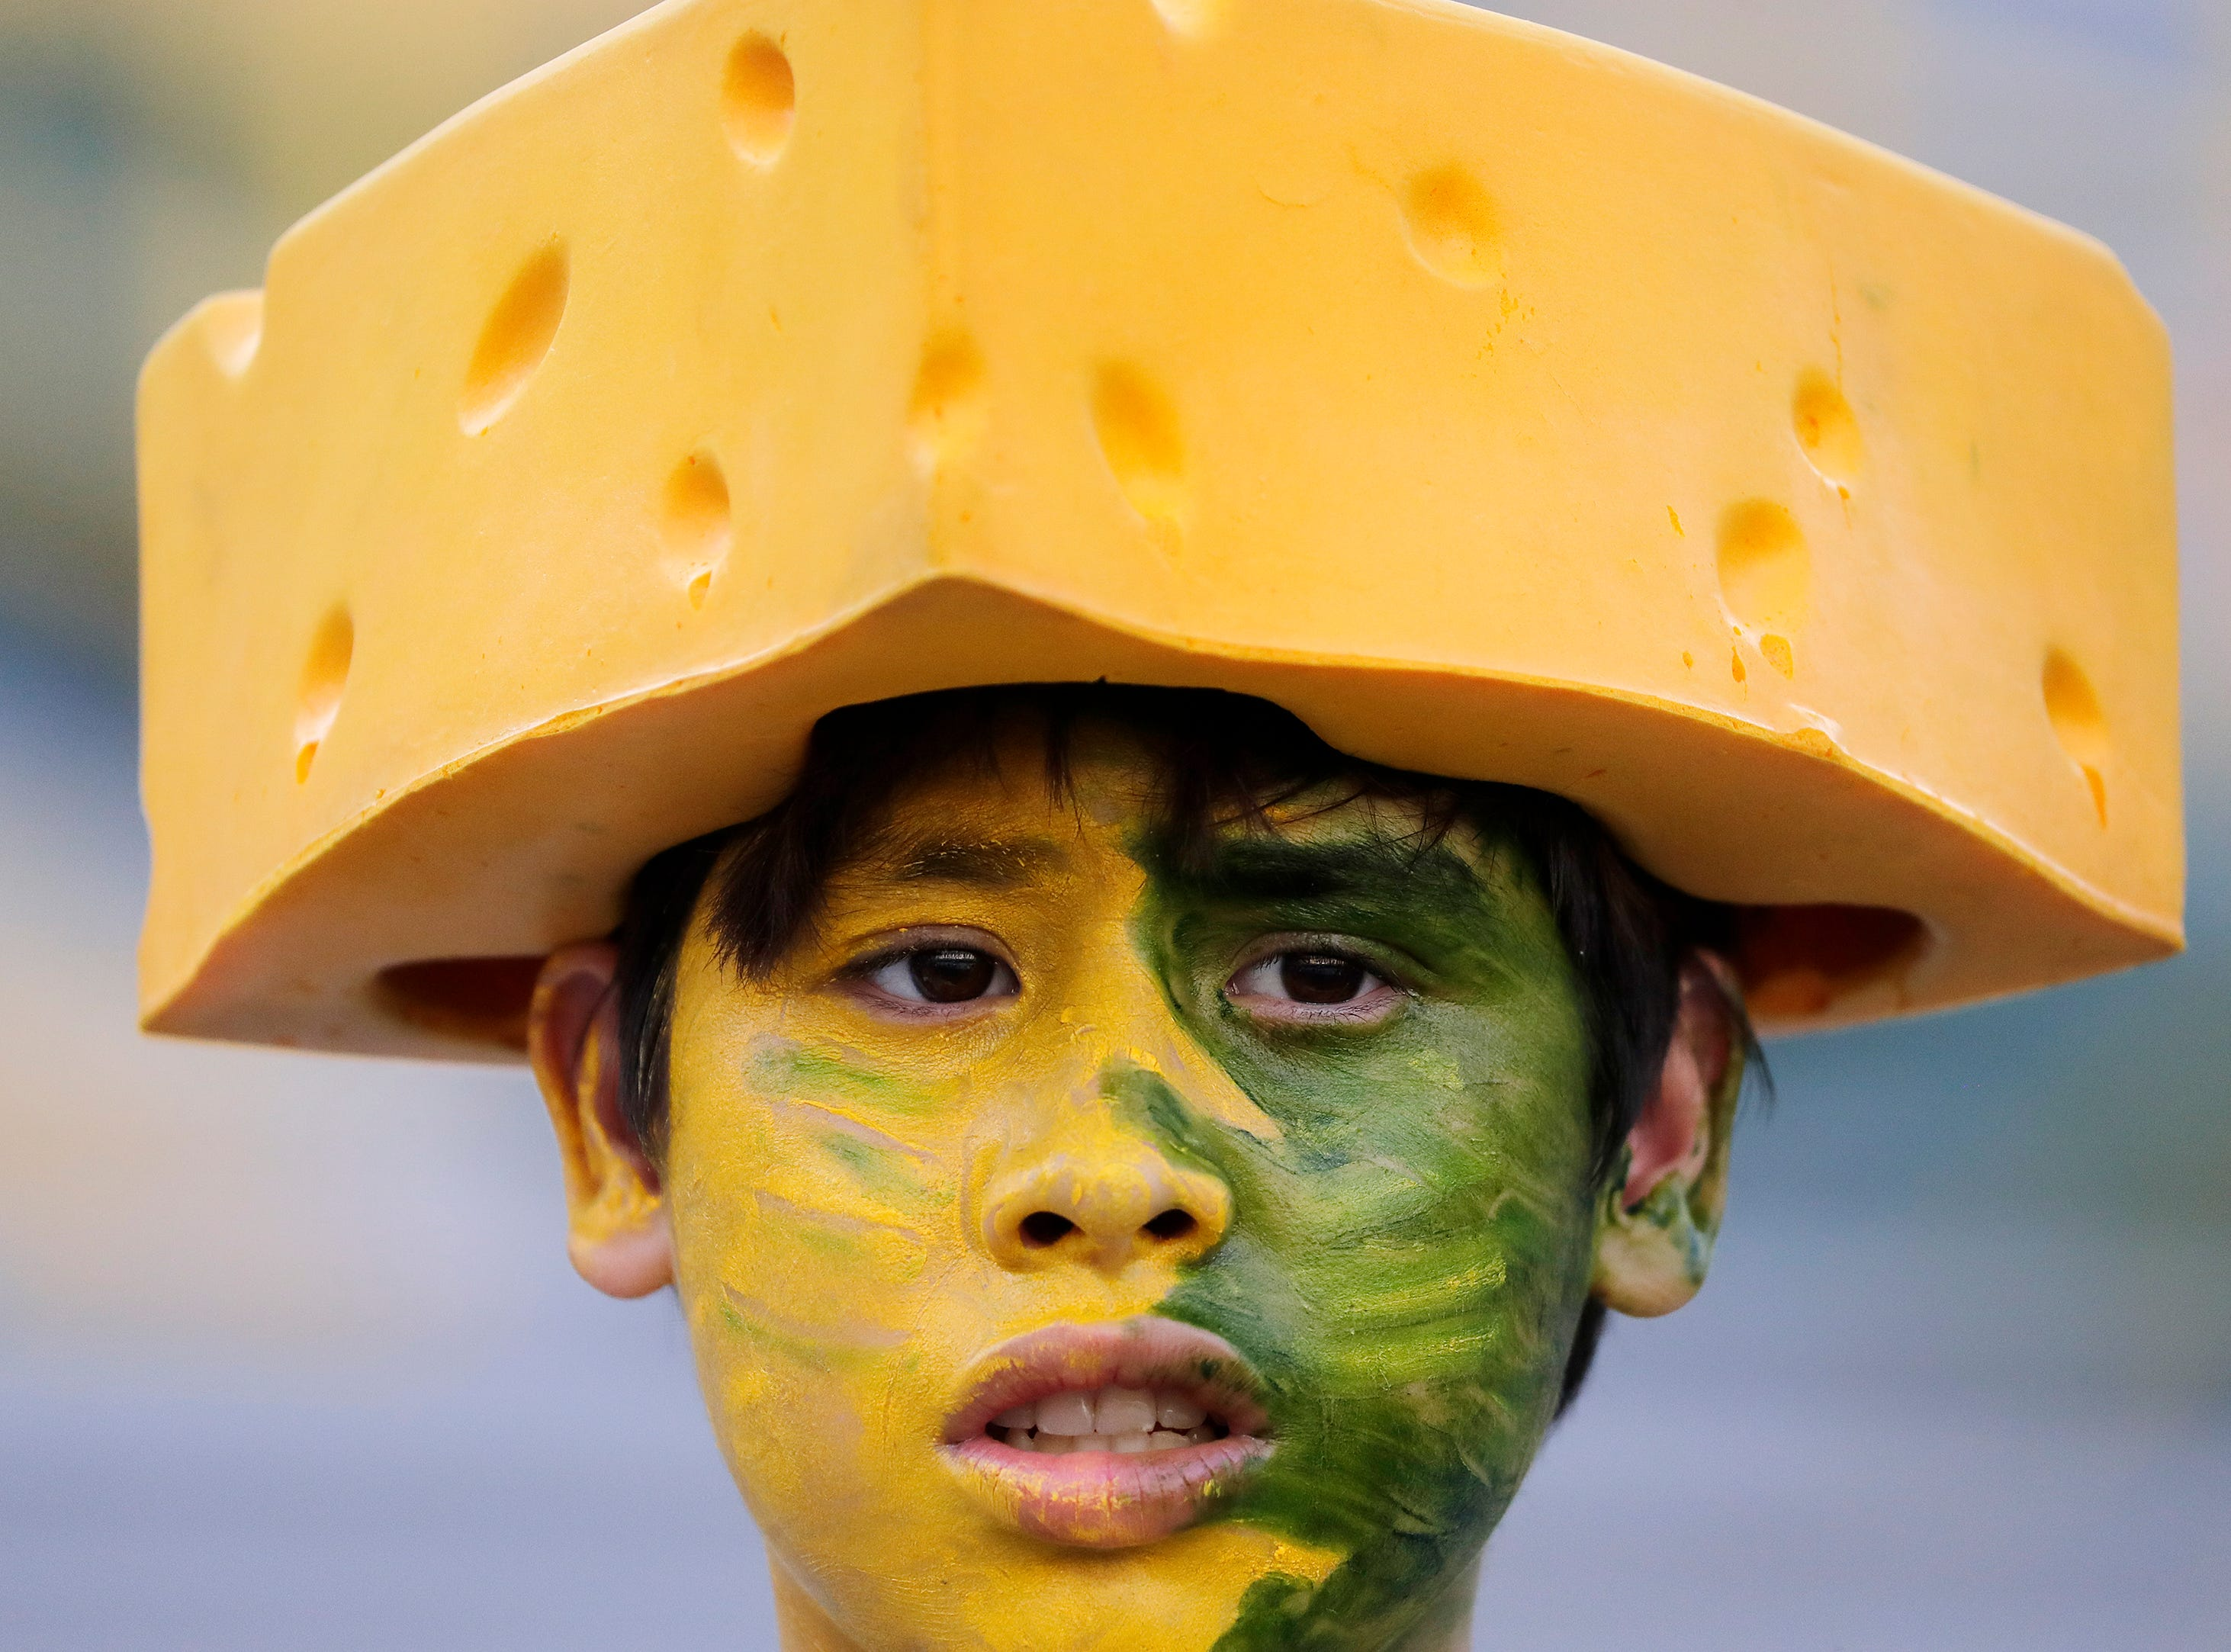 A younf Packers fan arrives for a NFL preseason game at Lambeau Field on Thursday, August 9, 2018 in Green Bay, Wis.